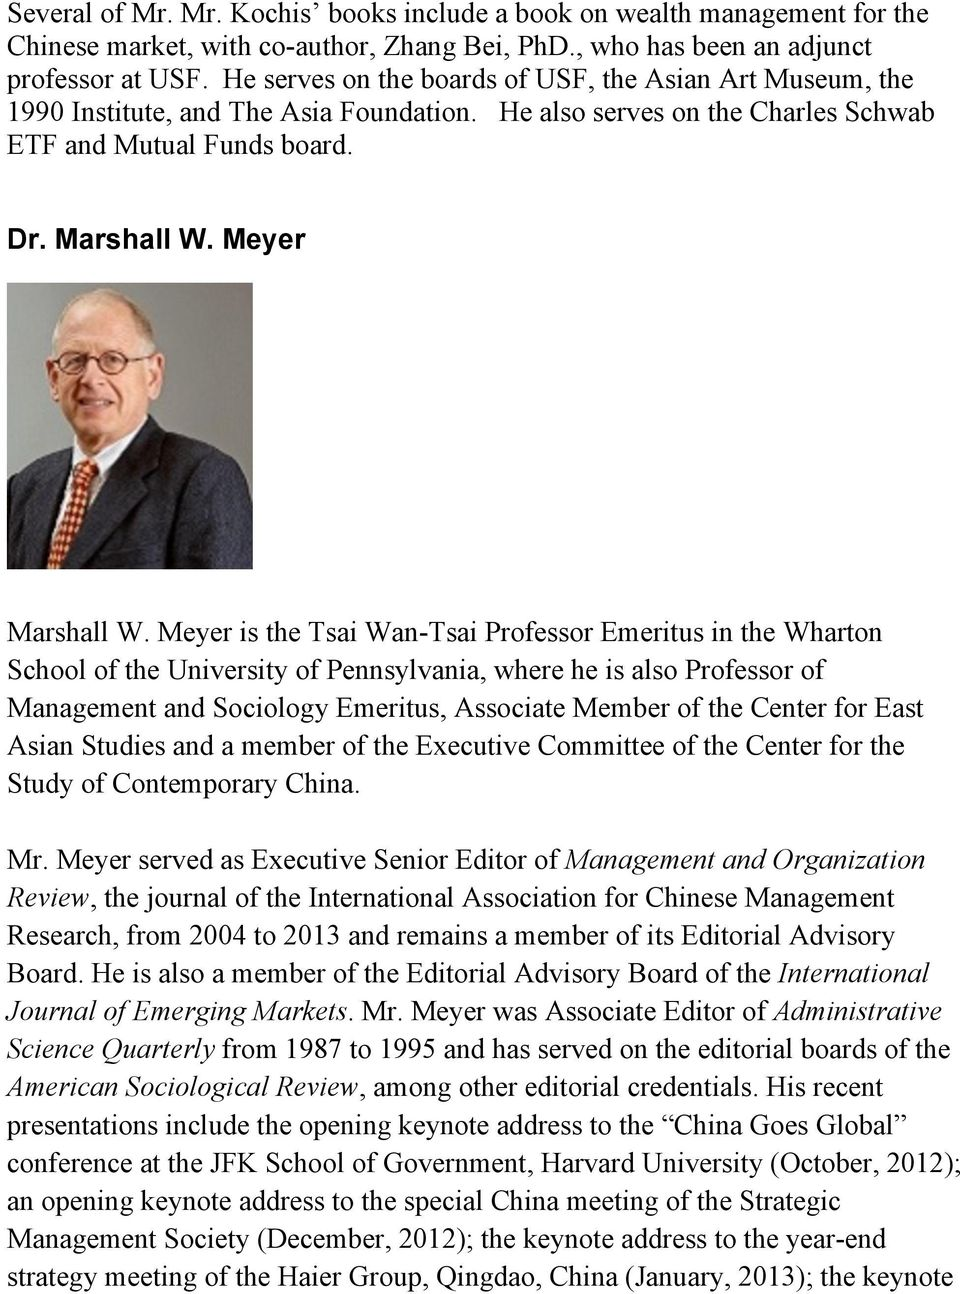 Meyer is the Tsai Wan-Tsai Professor Emeritus in the Wharton School of the University of Pennsylvania, where he is also Professor of Management and Sociology Emeritus, Associate Member of the Center